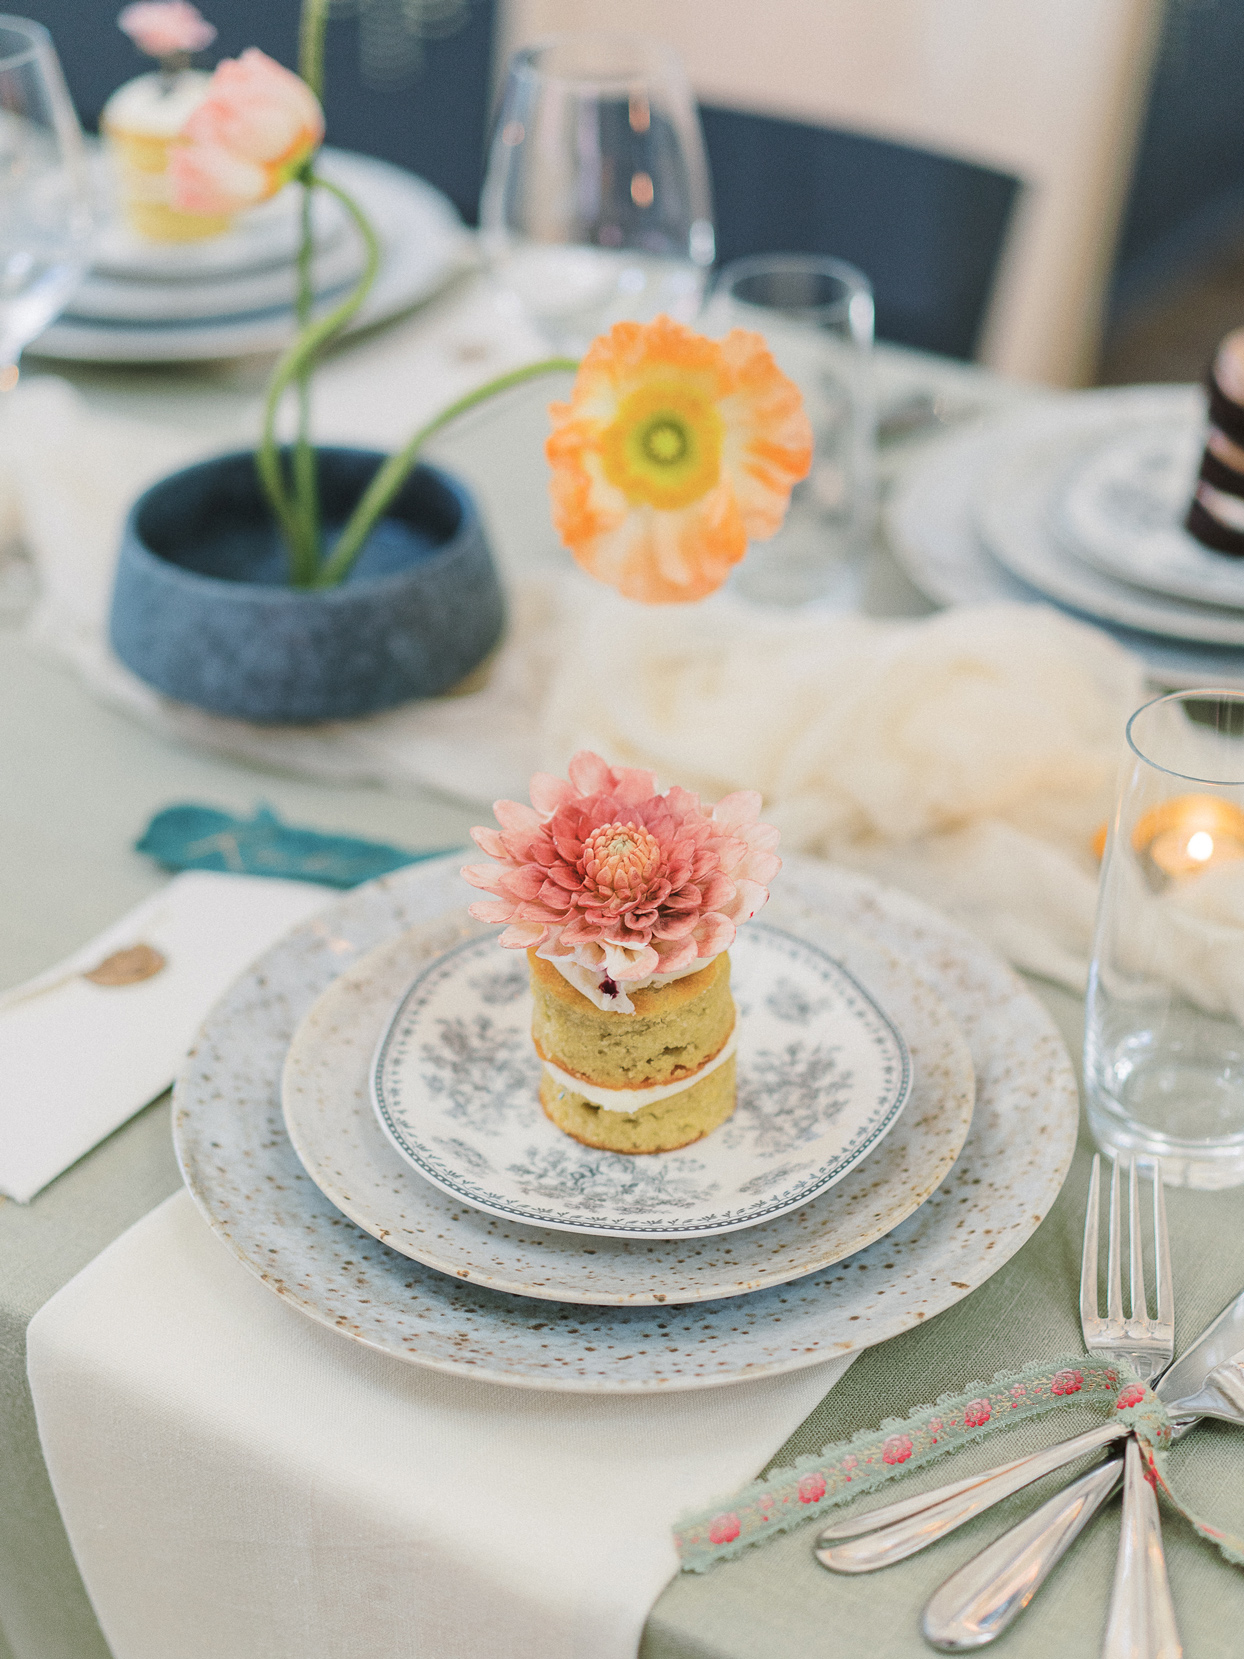 speckled place settings with individual cakes